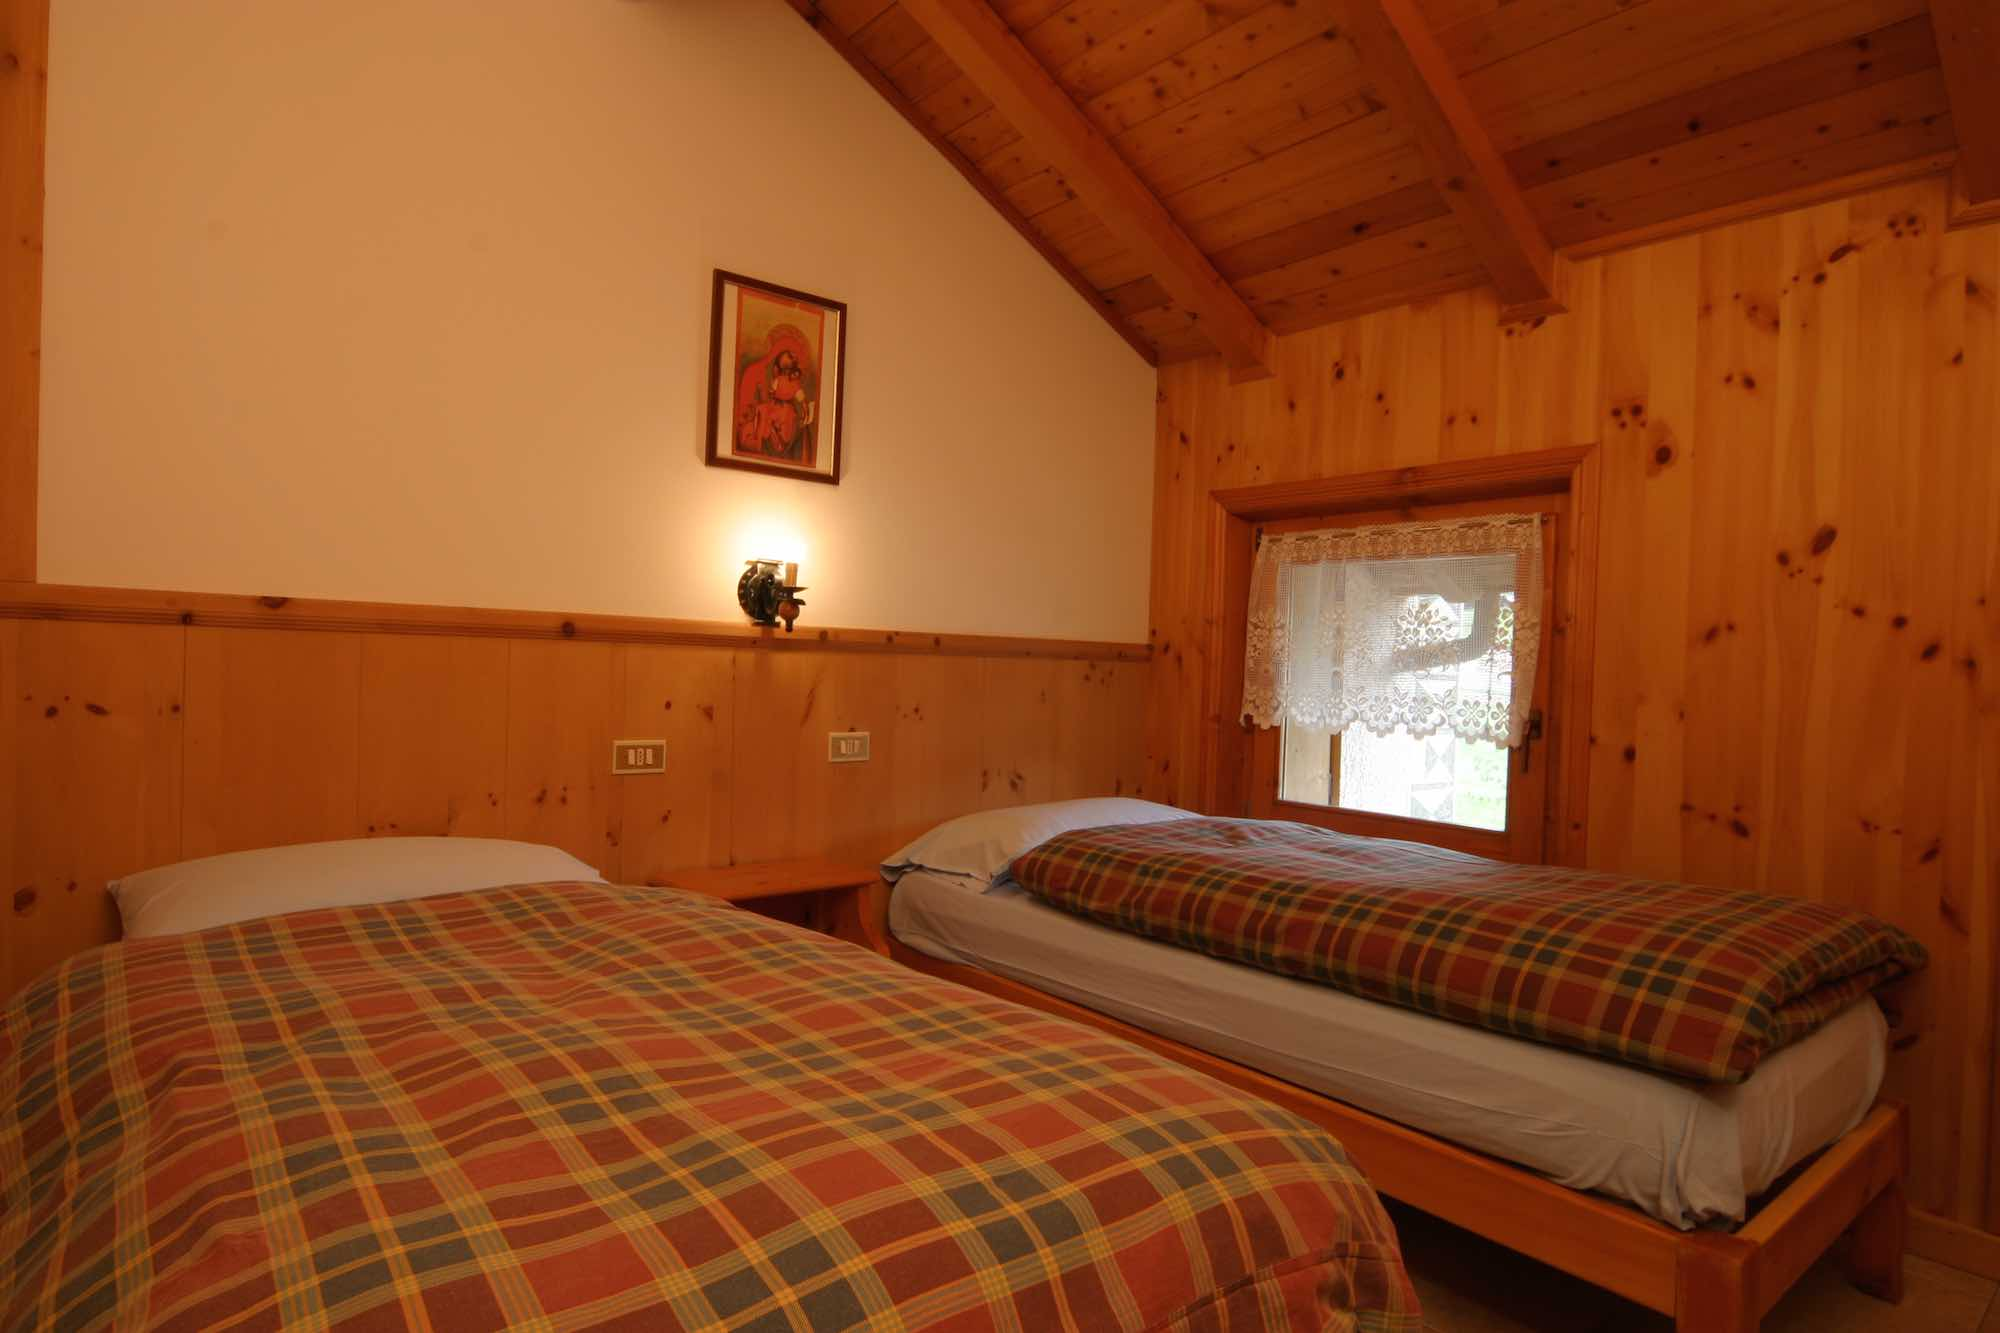 Bait da Borch - Via Saroch N.1430/f, Livigno 23041 - Apartment - Appartamento Vetta 4